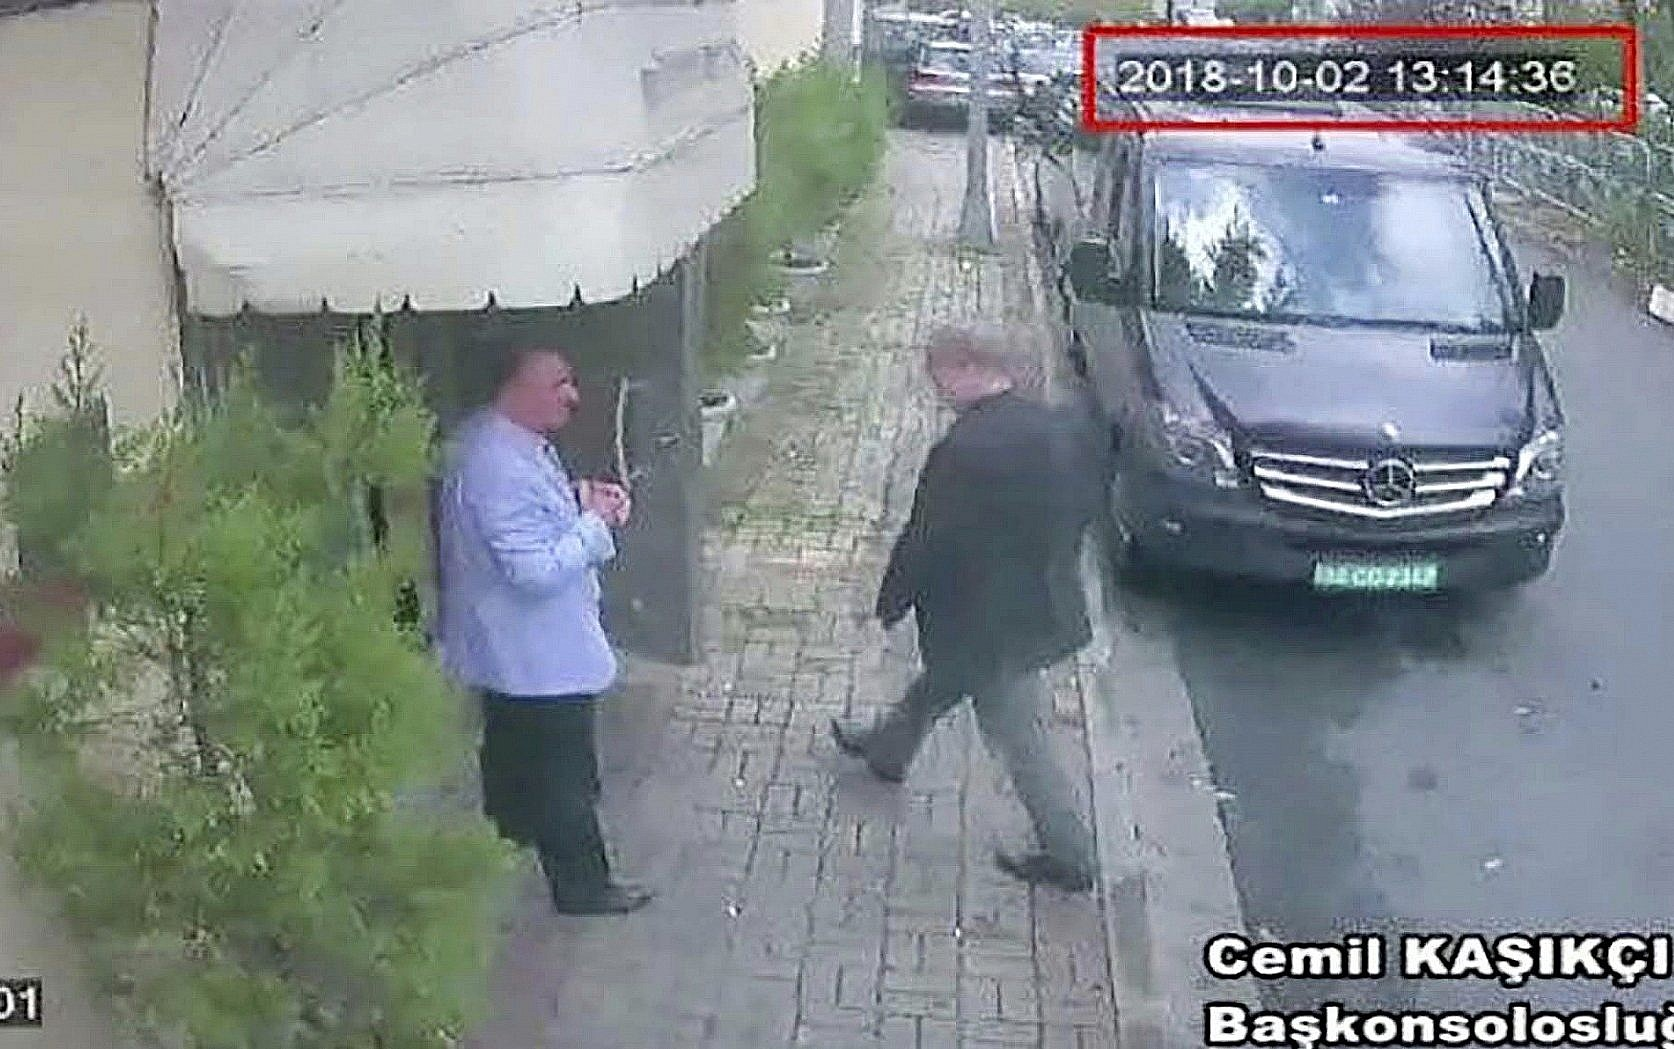 Saudi squad who came for Jamal Khashoggi included soldiers, royal guards